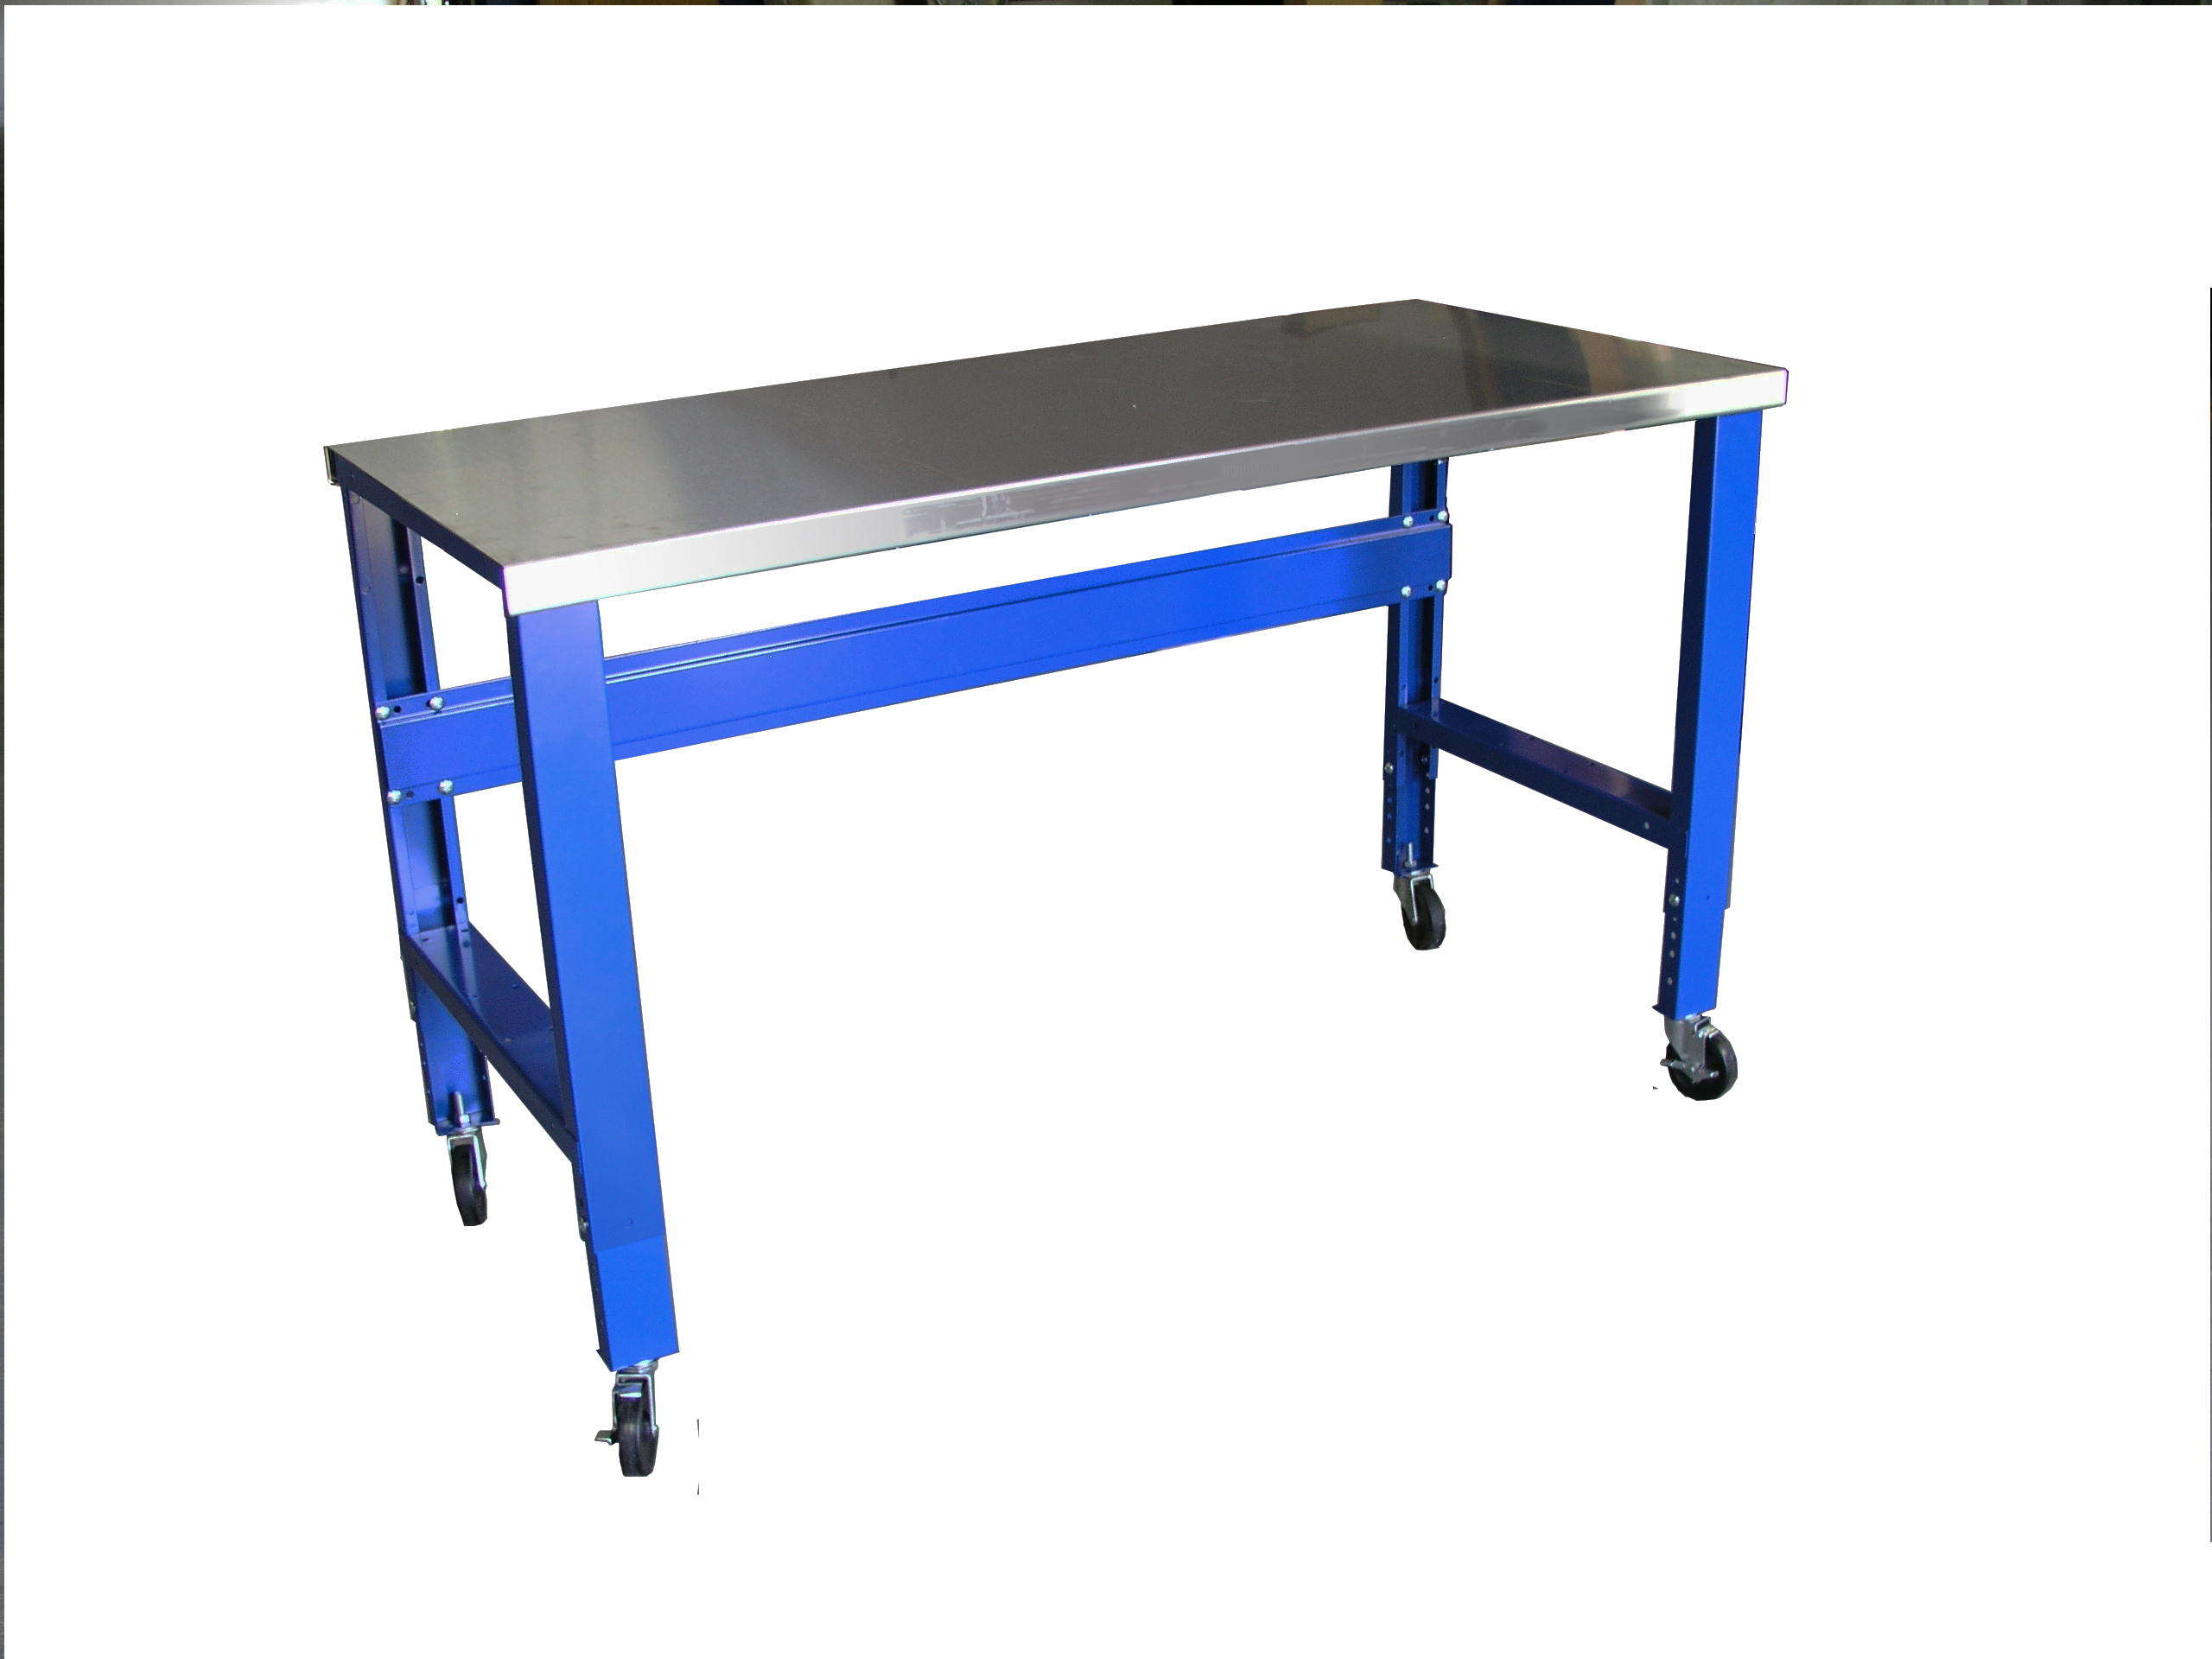 Metal mobile workbench with wheels - Perfect for workshops, manufacturing, automotive, and more! - Tyler Supply